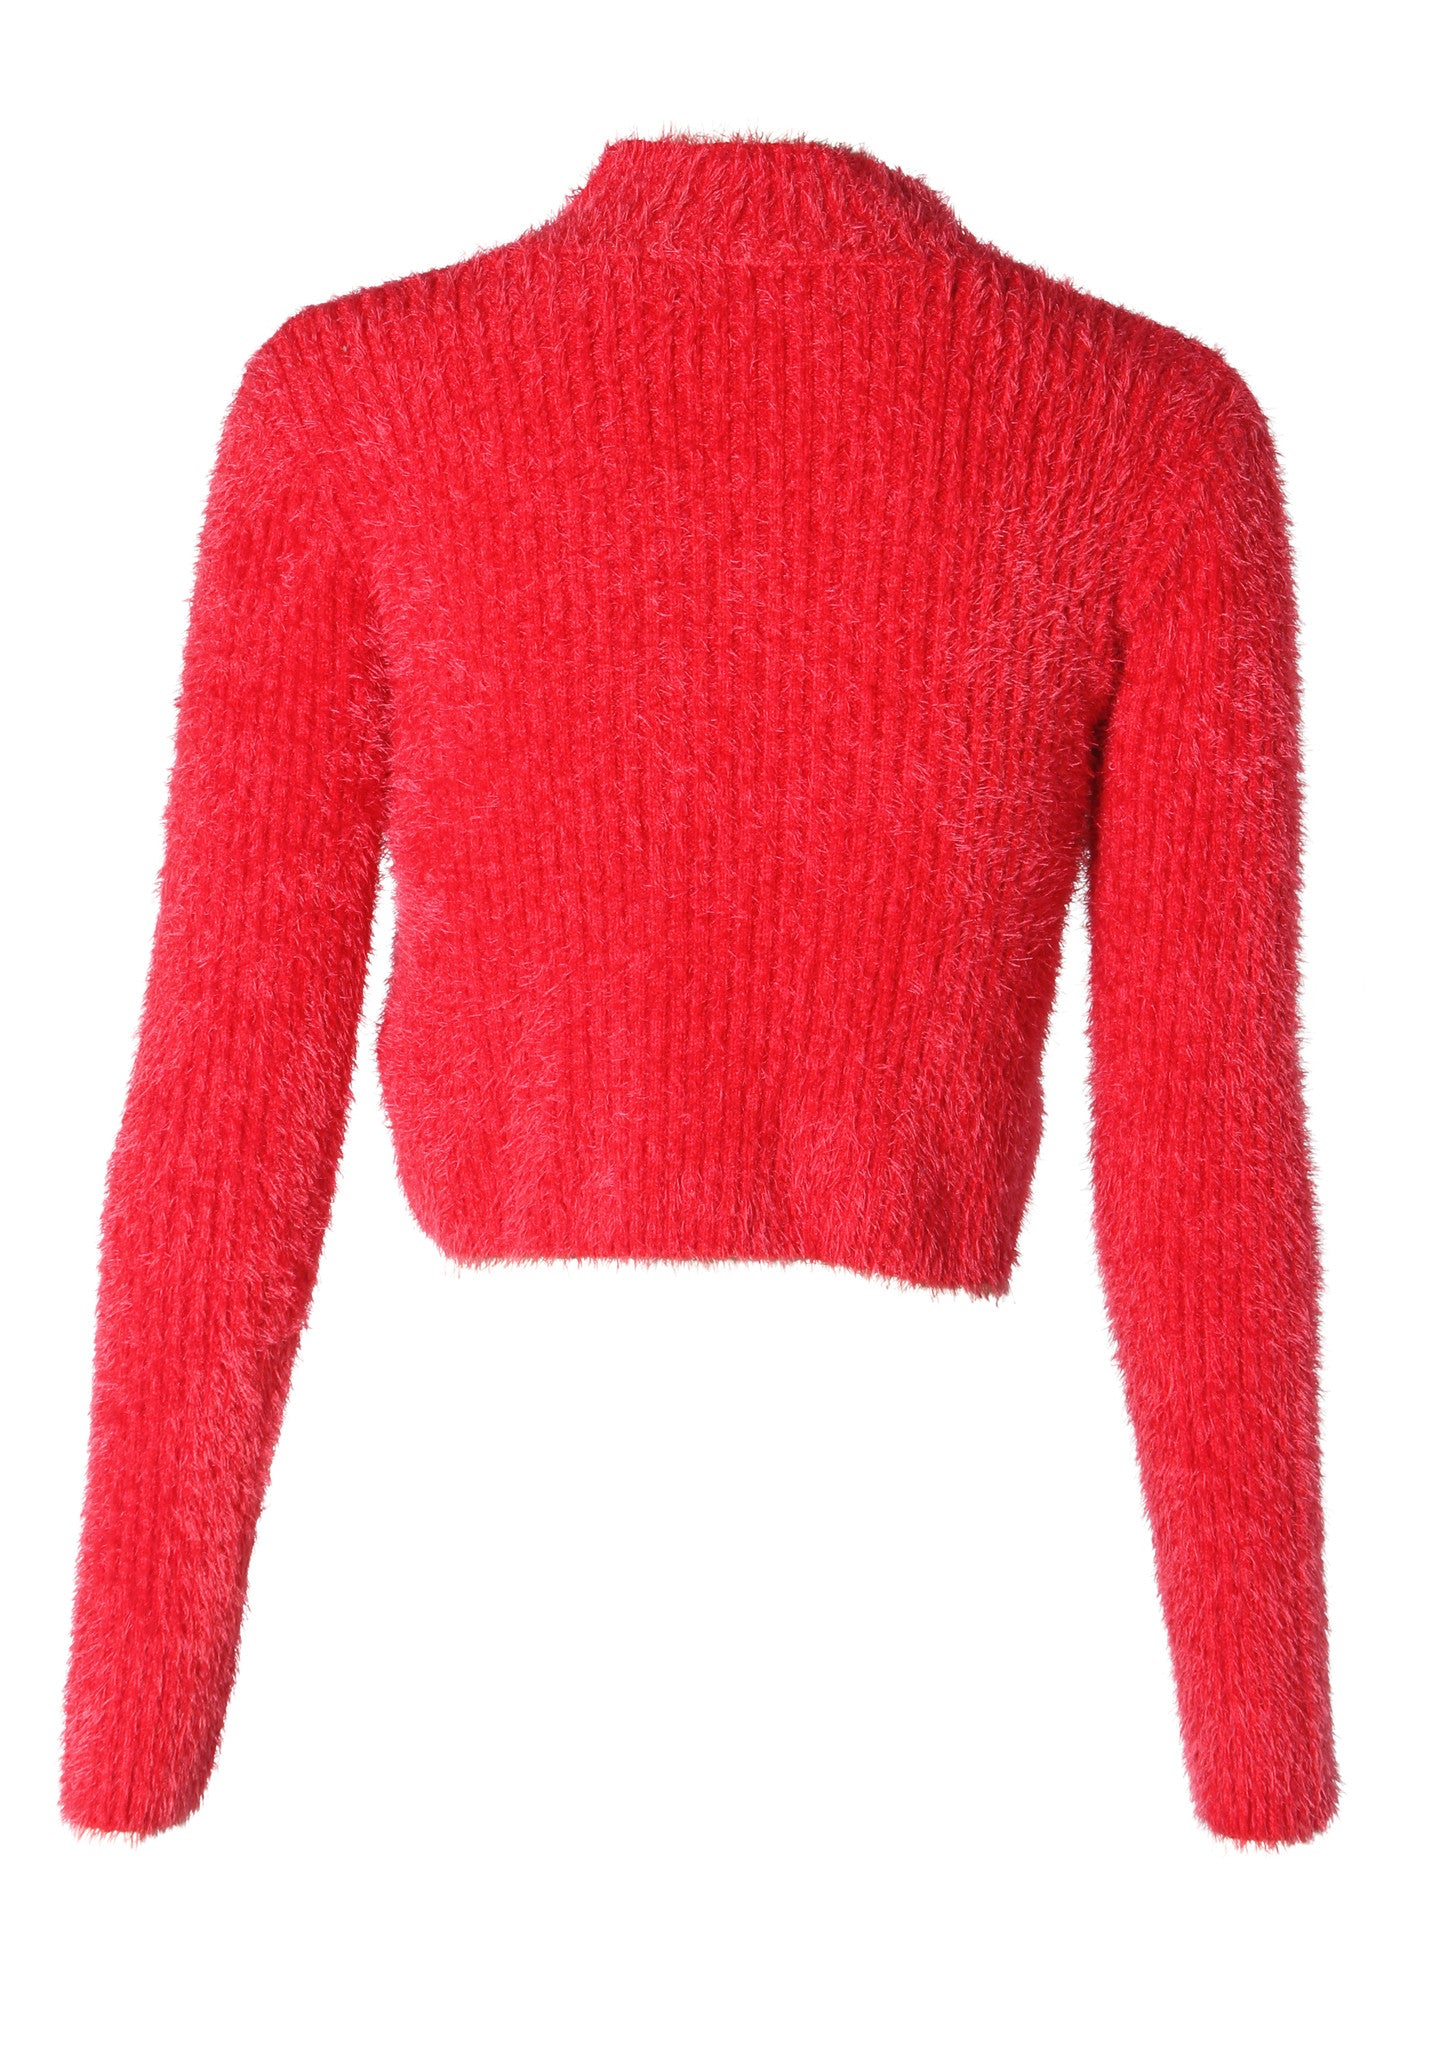 MinkPink First Base Skivvy Knit